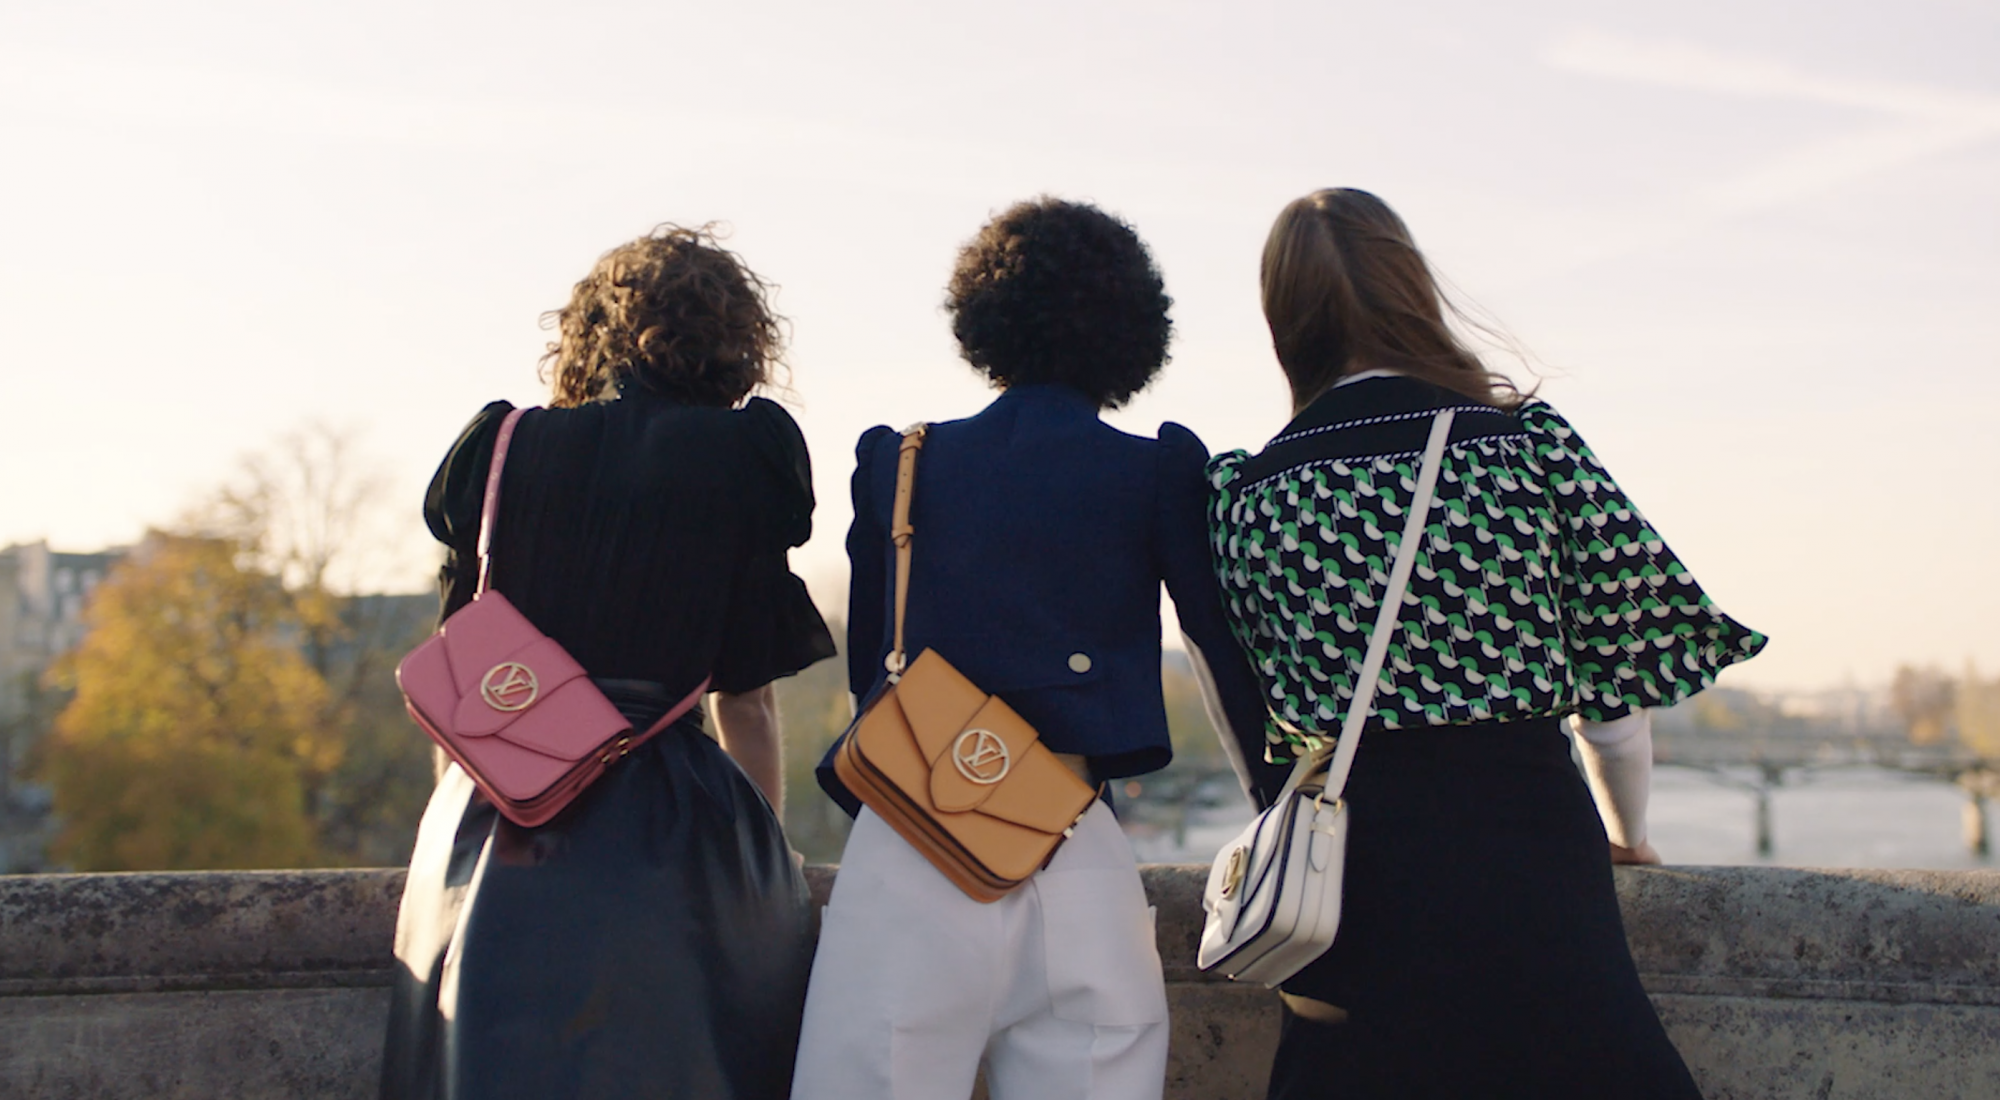 Meet the LV Pont 9: Louis Vuitton's Key Bag of 2020 Launches in Singapore Today